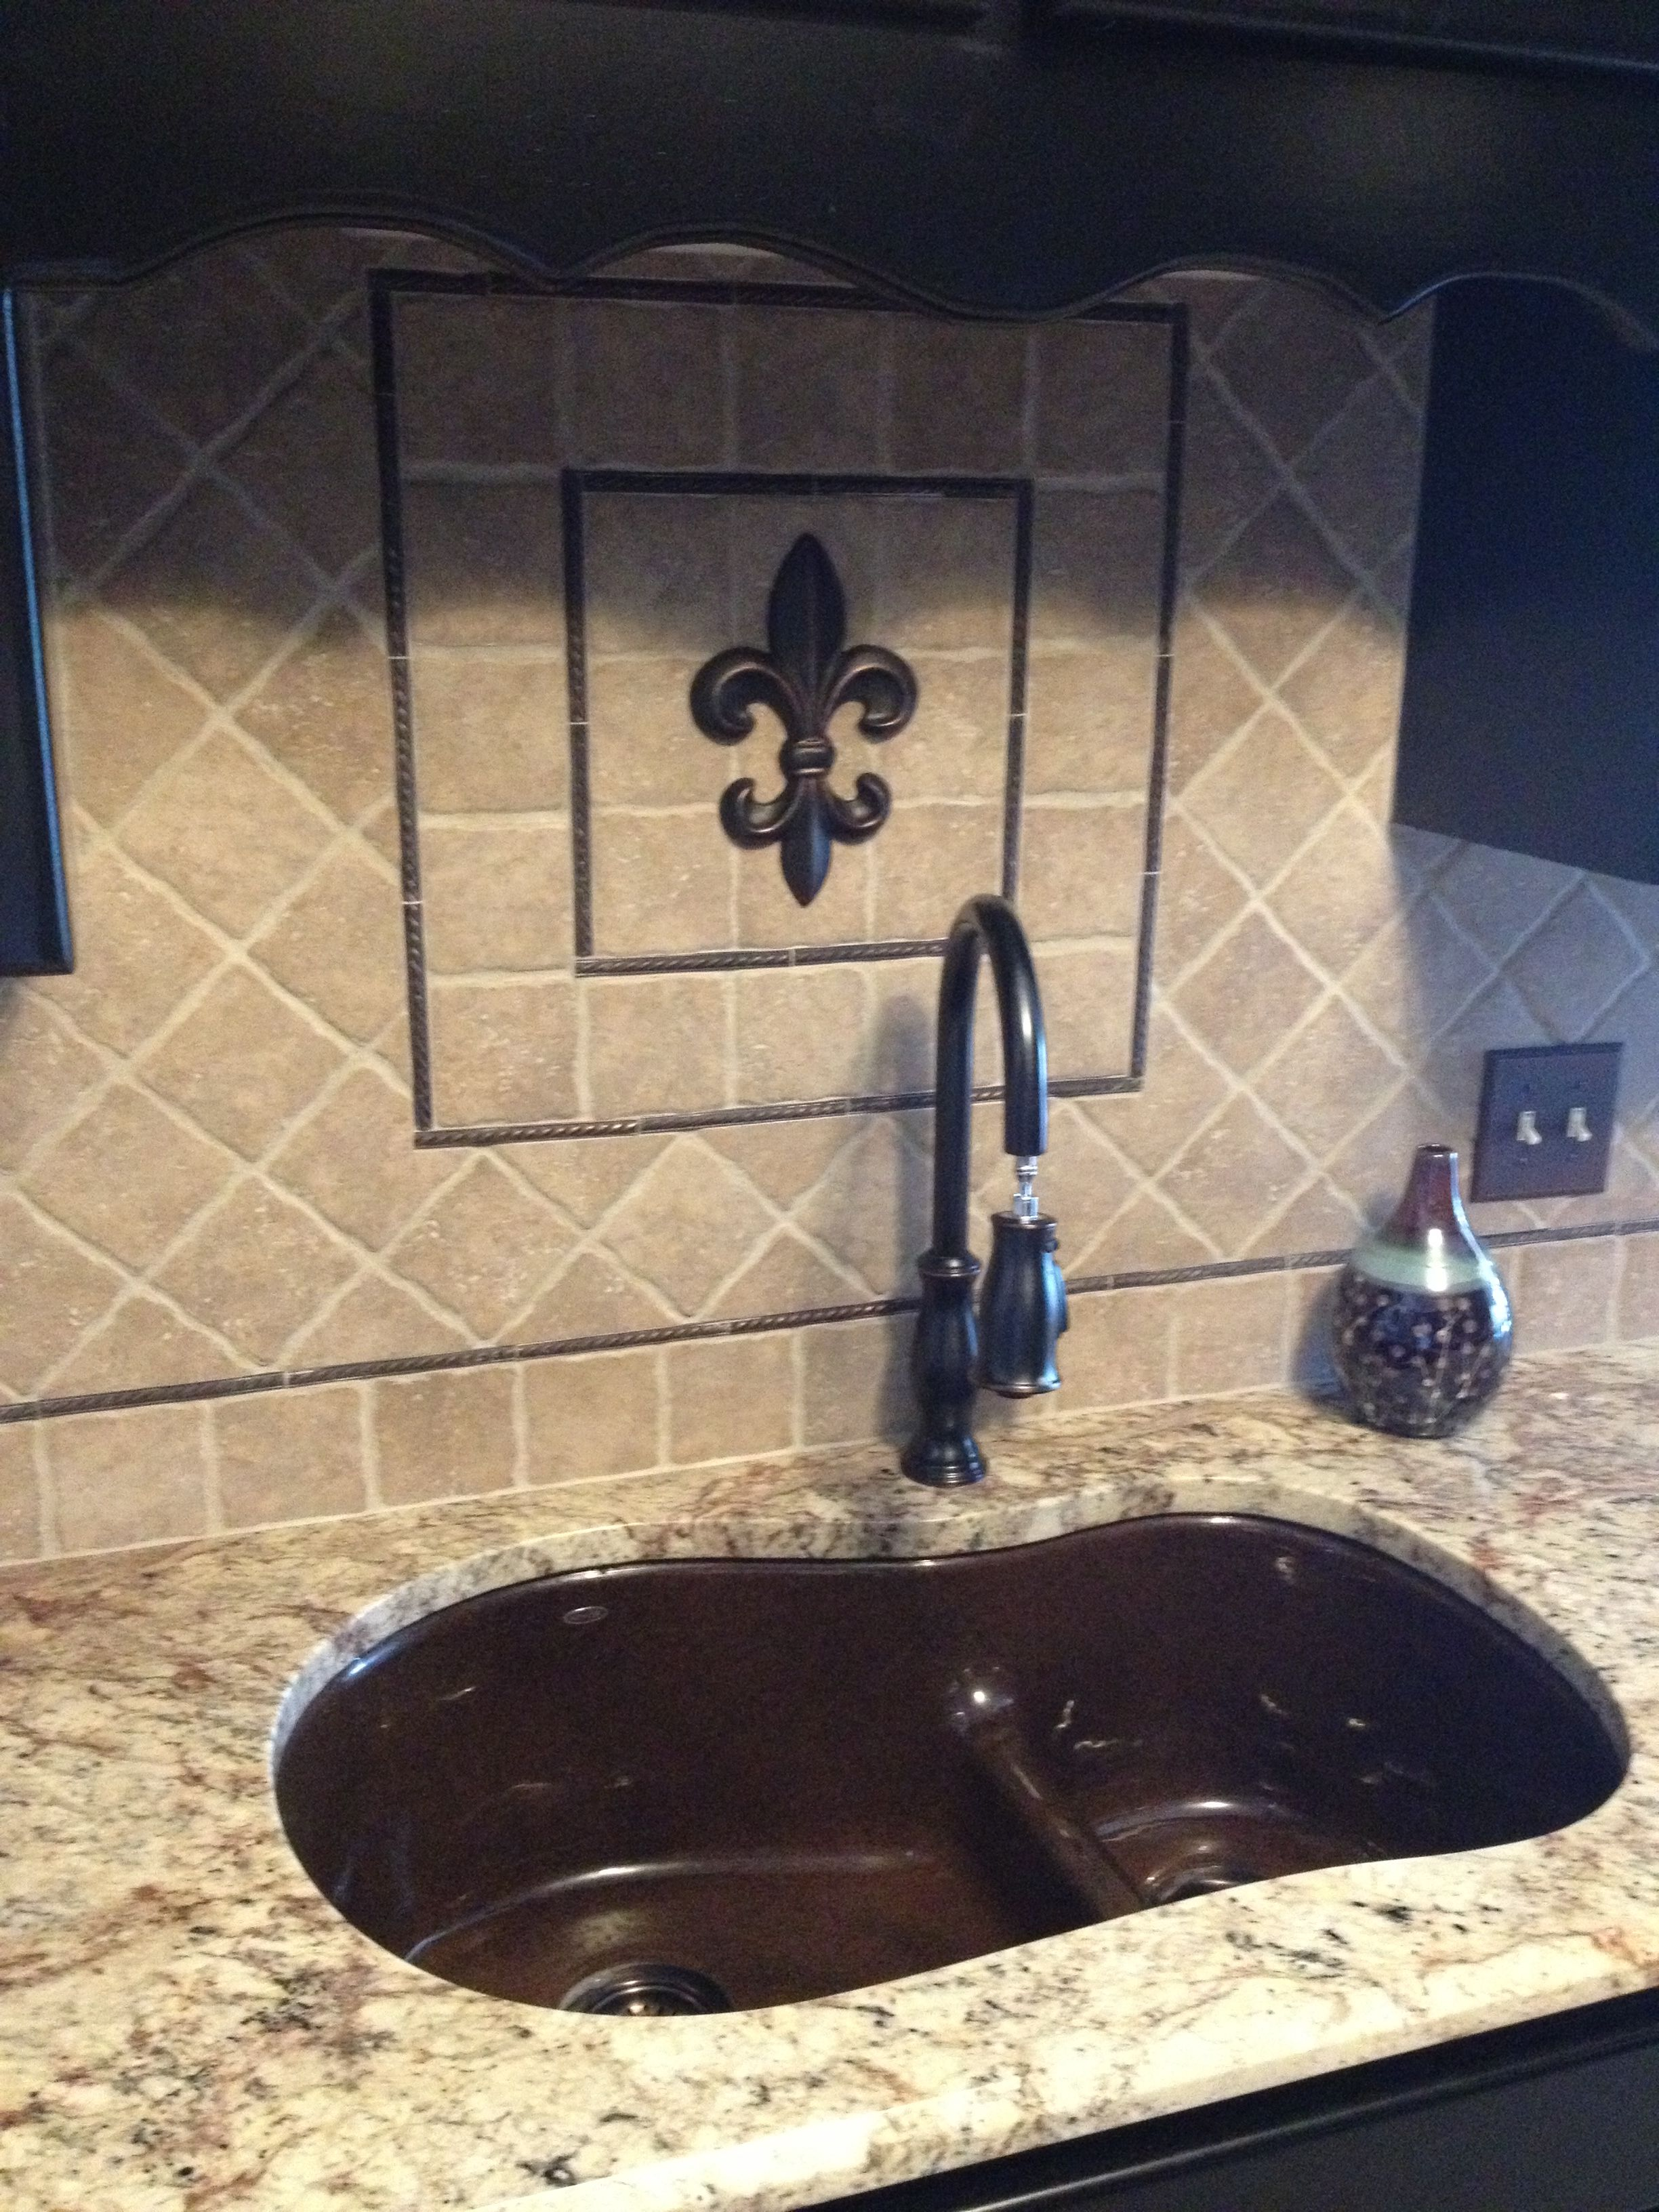 Fleur de lis backsplash i got the fdl from hobby lobby and painted it to match the bronze pieces from lowes that i was using for my backsplash